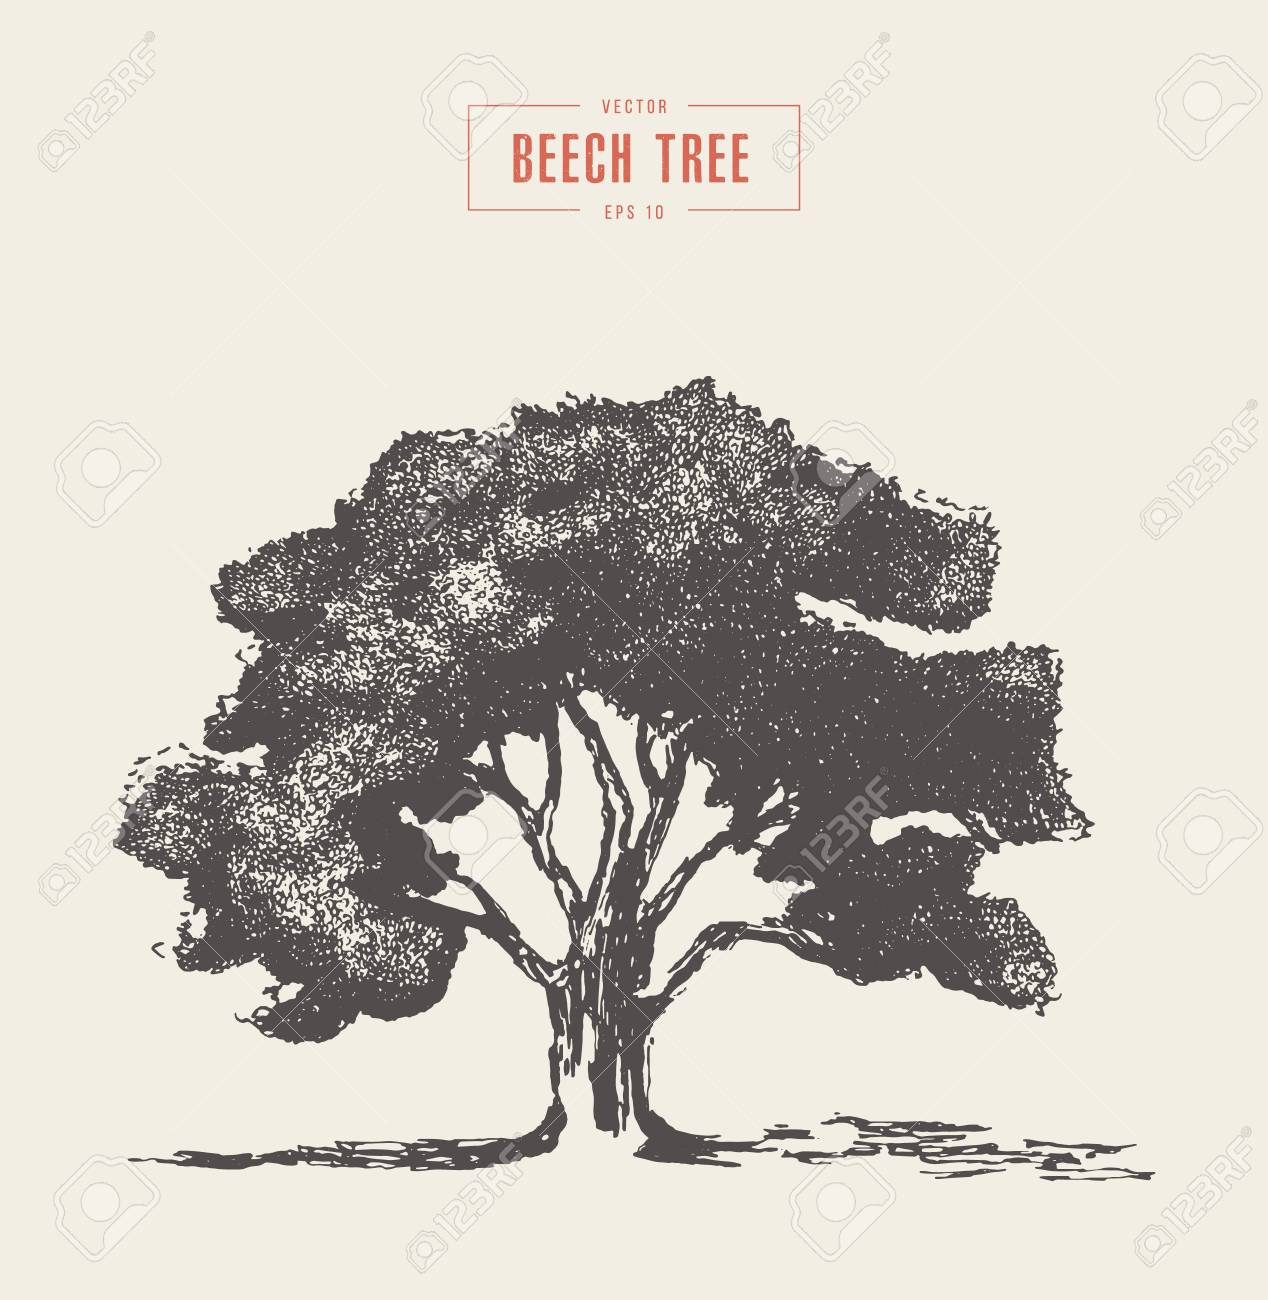 High Detail Vintage Illustration Of A Beech Tree Hand Drawn Royalty Free Cliparts Vectors And Stock Illustration Image 111839790